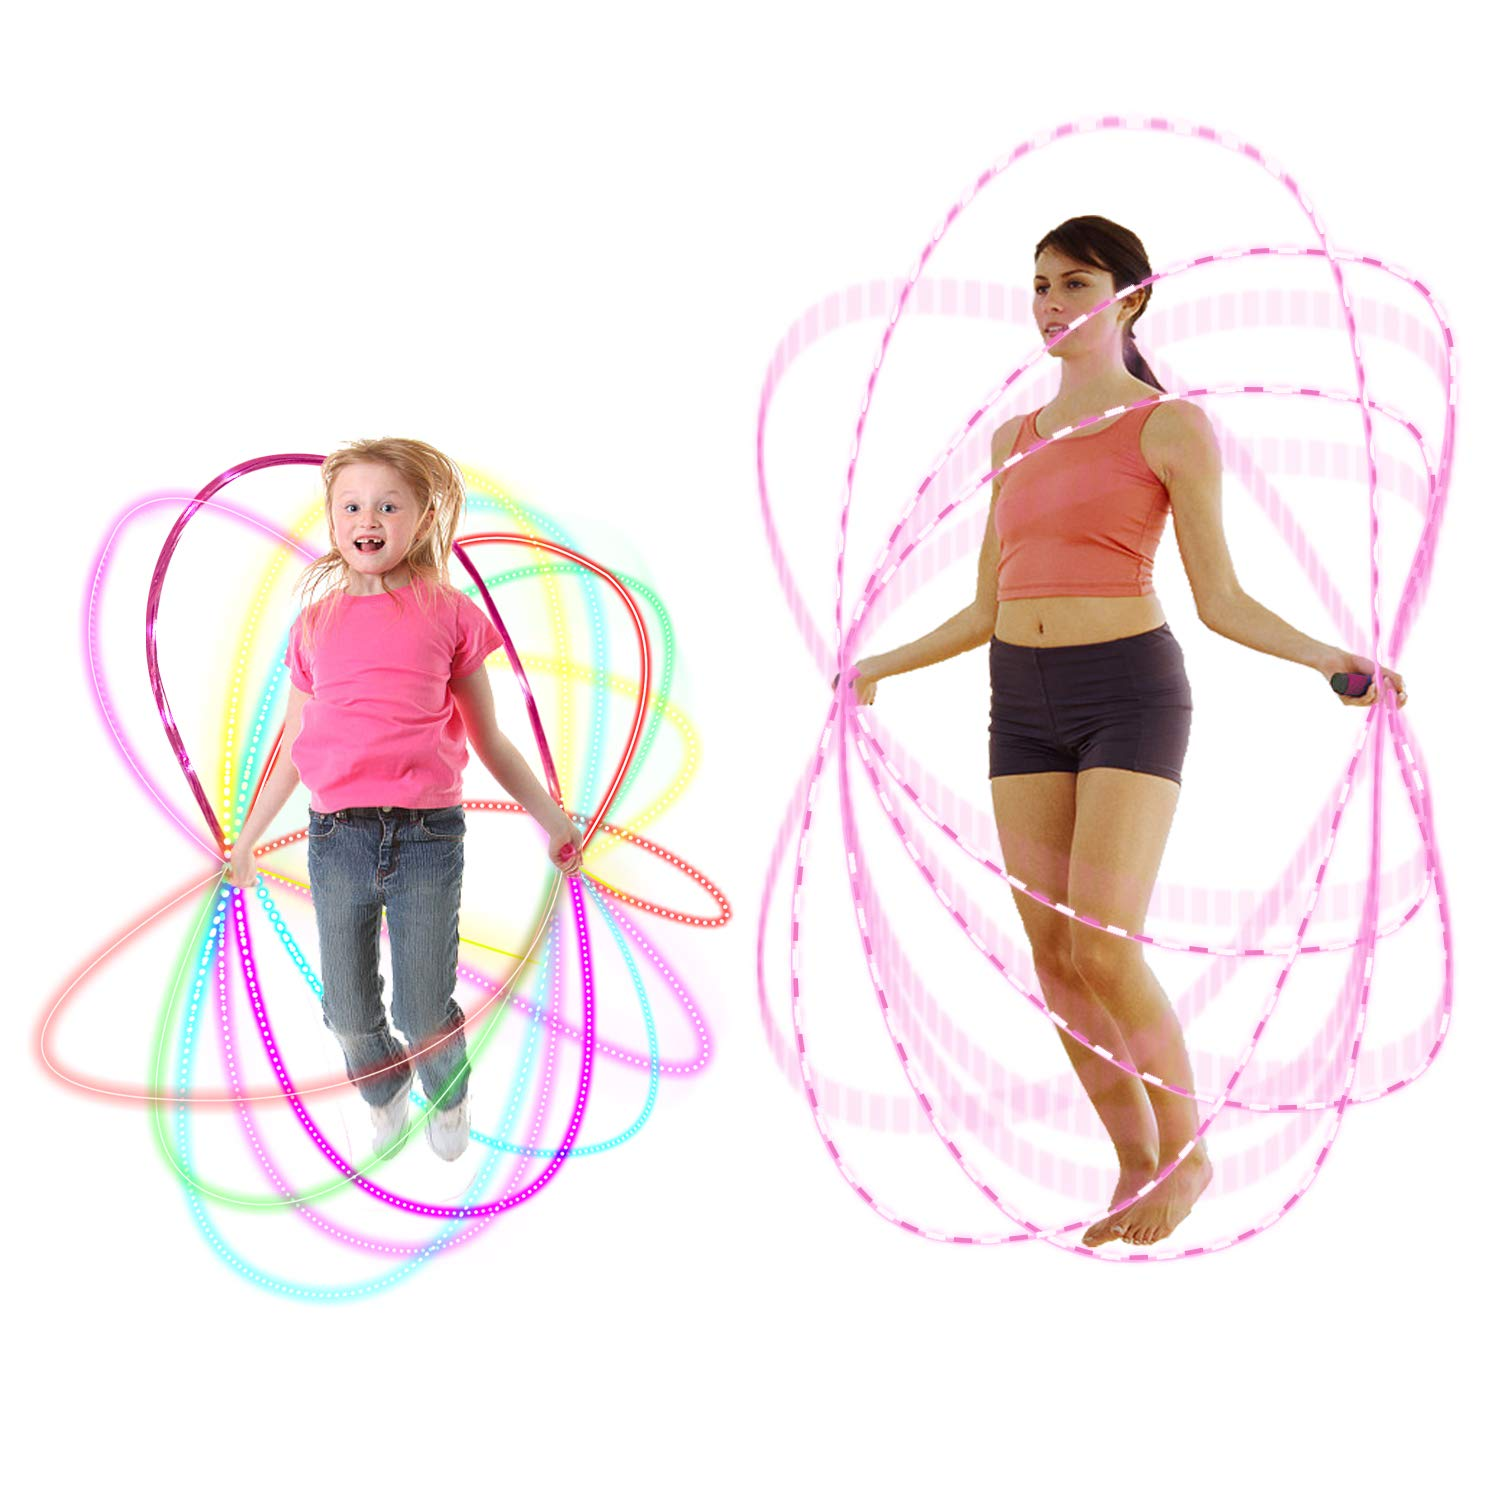 HongMe Jump Rope - Led Rope Light - 7 Foot Skipping Rope for Kids Jumping Exercise and Night Fun Party Favors, Chinese Jump Rope Pink Gifts for Girls (2 Pack- Pink and Red) by HongMe